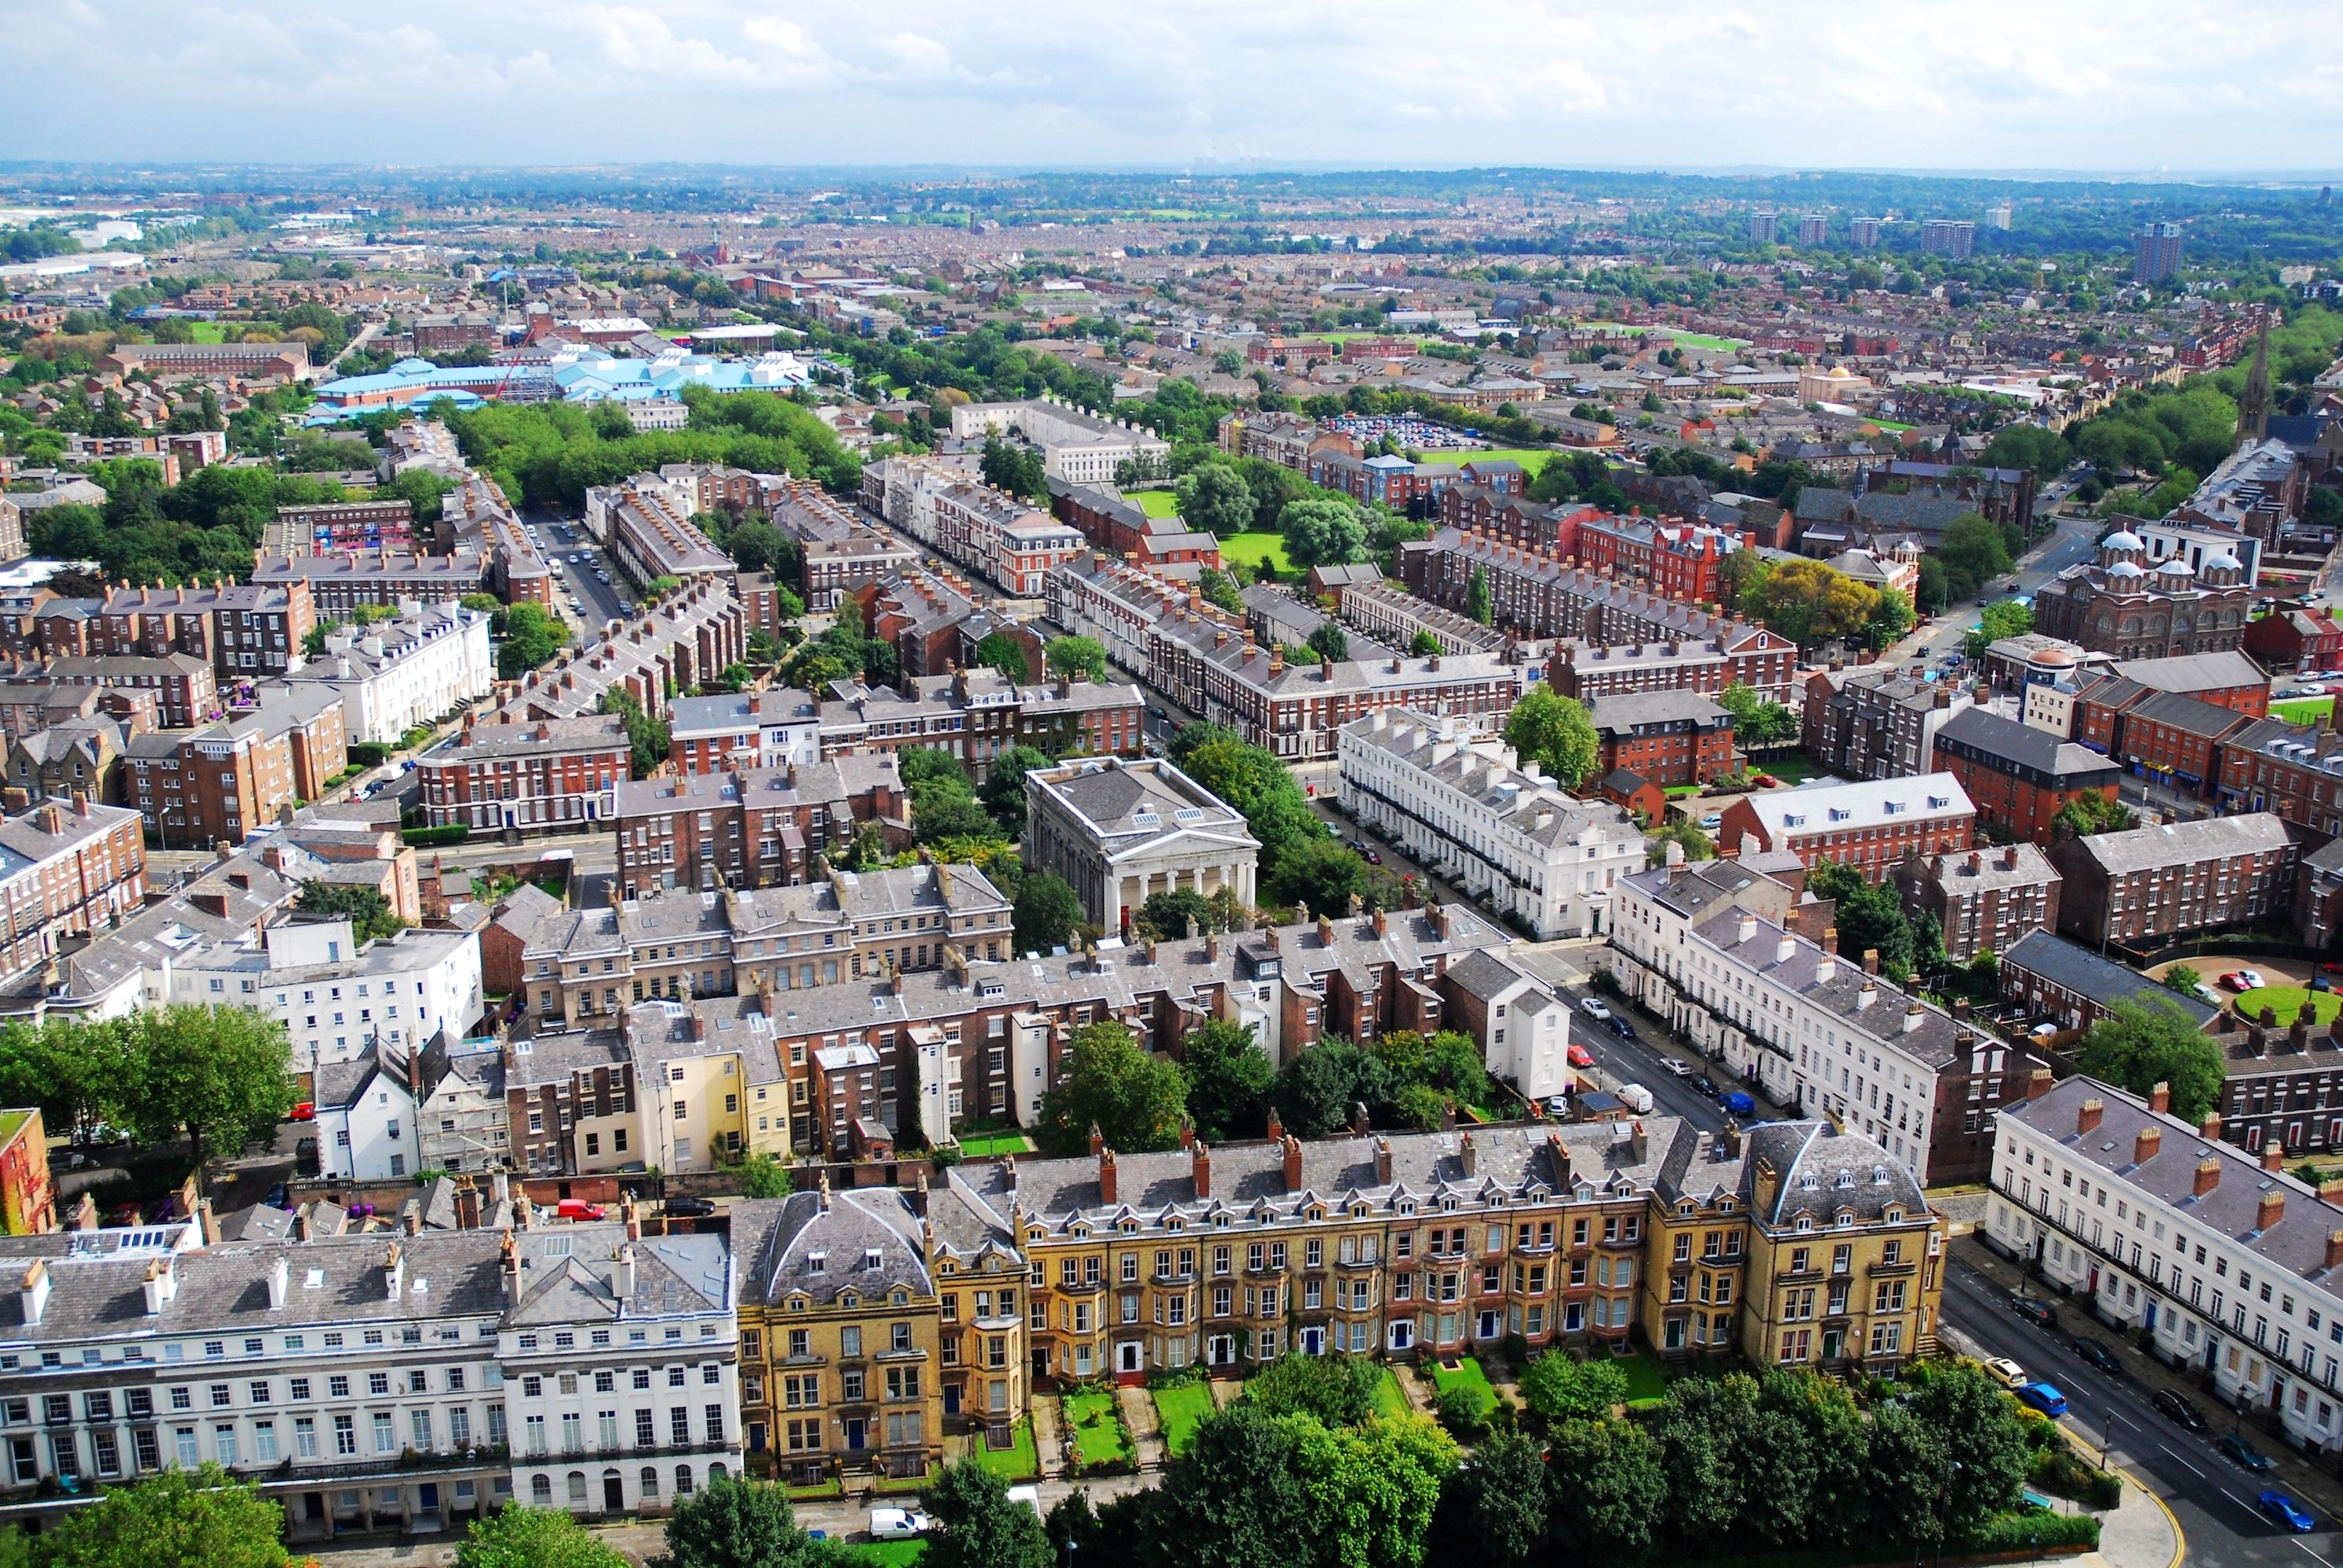 Top 10 safest cities to live in the UK